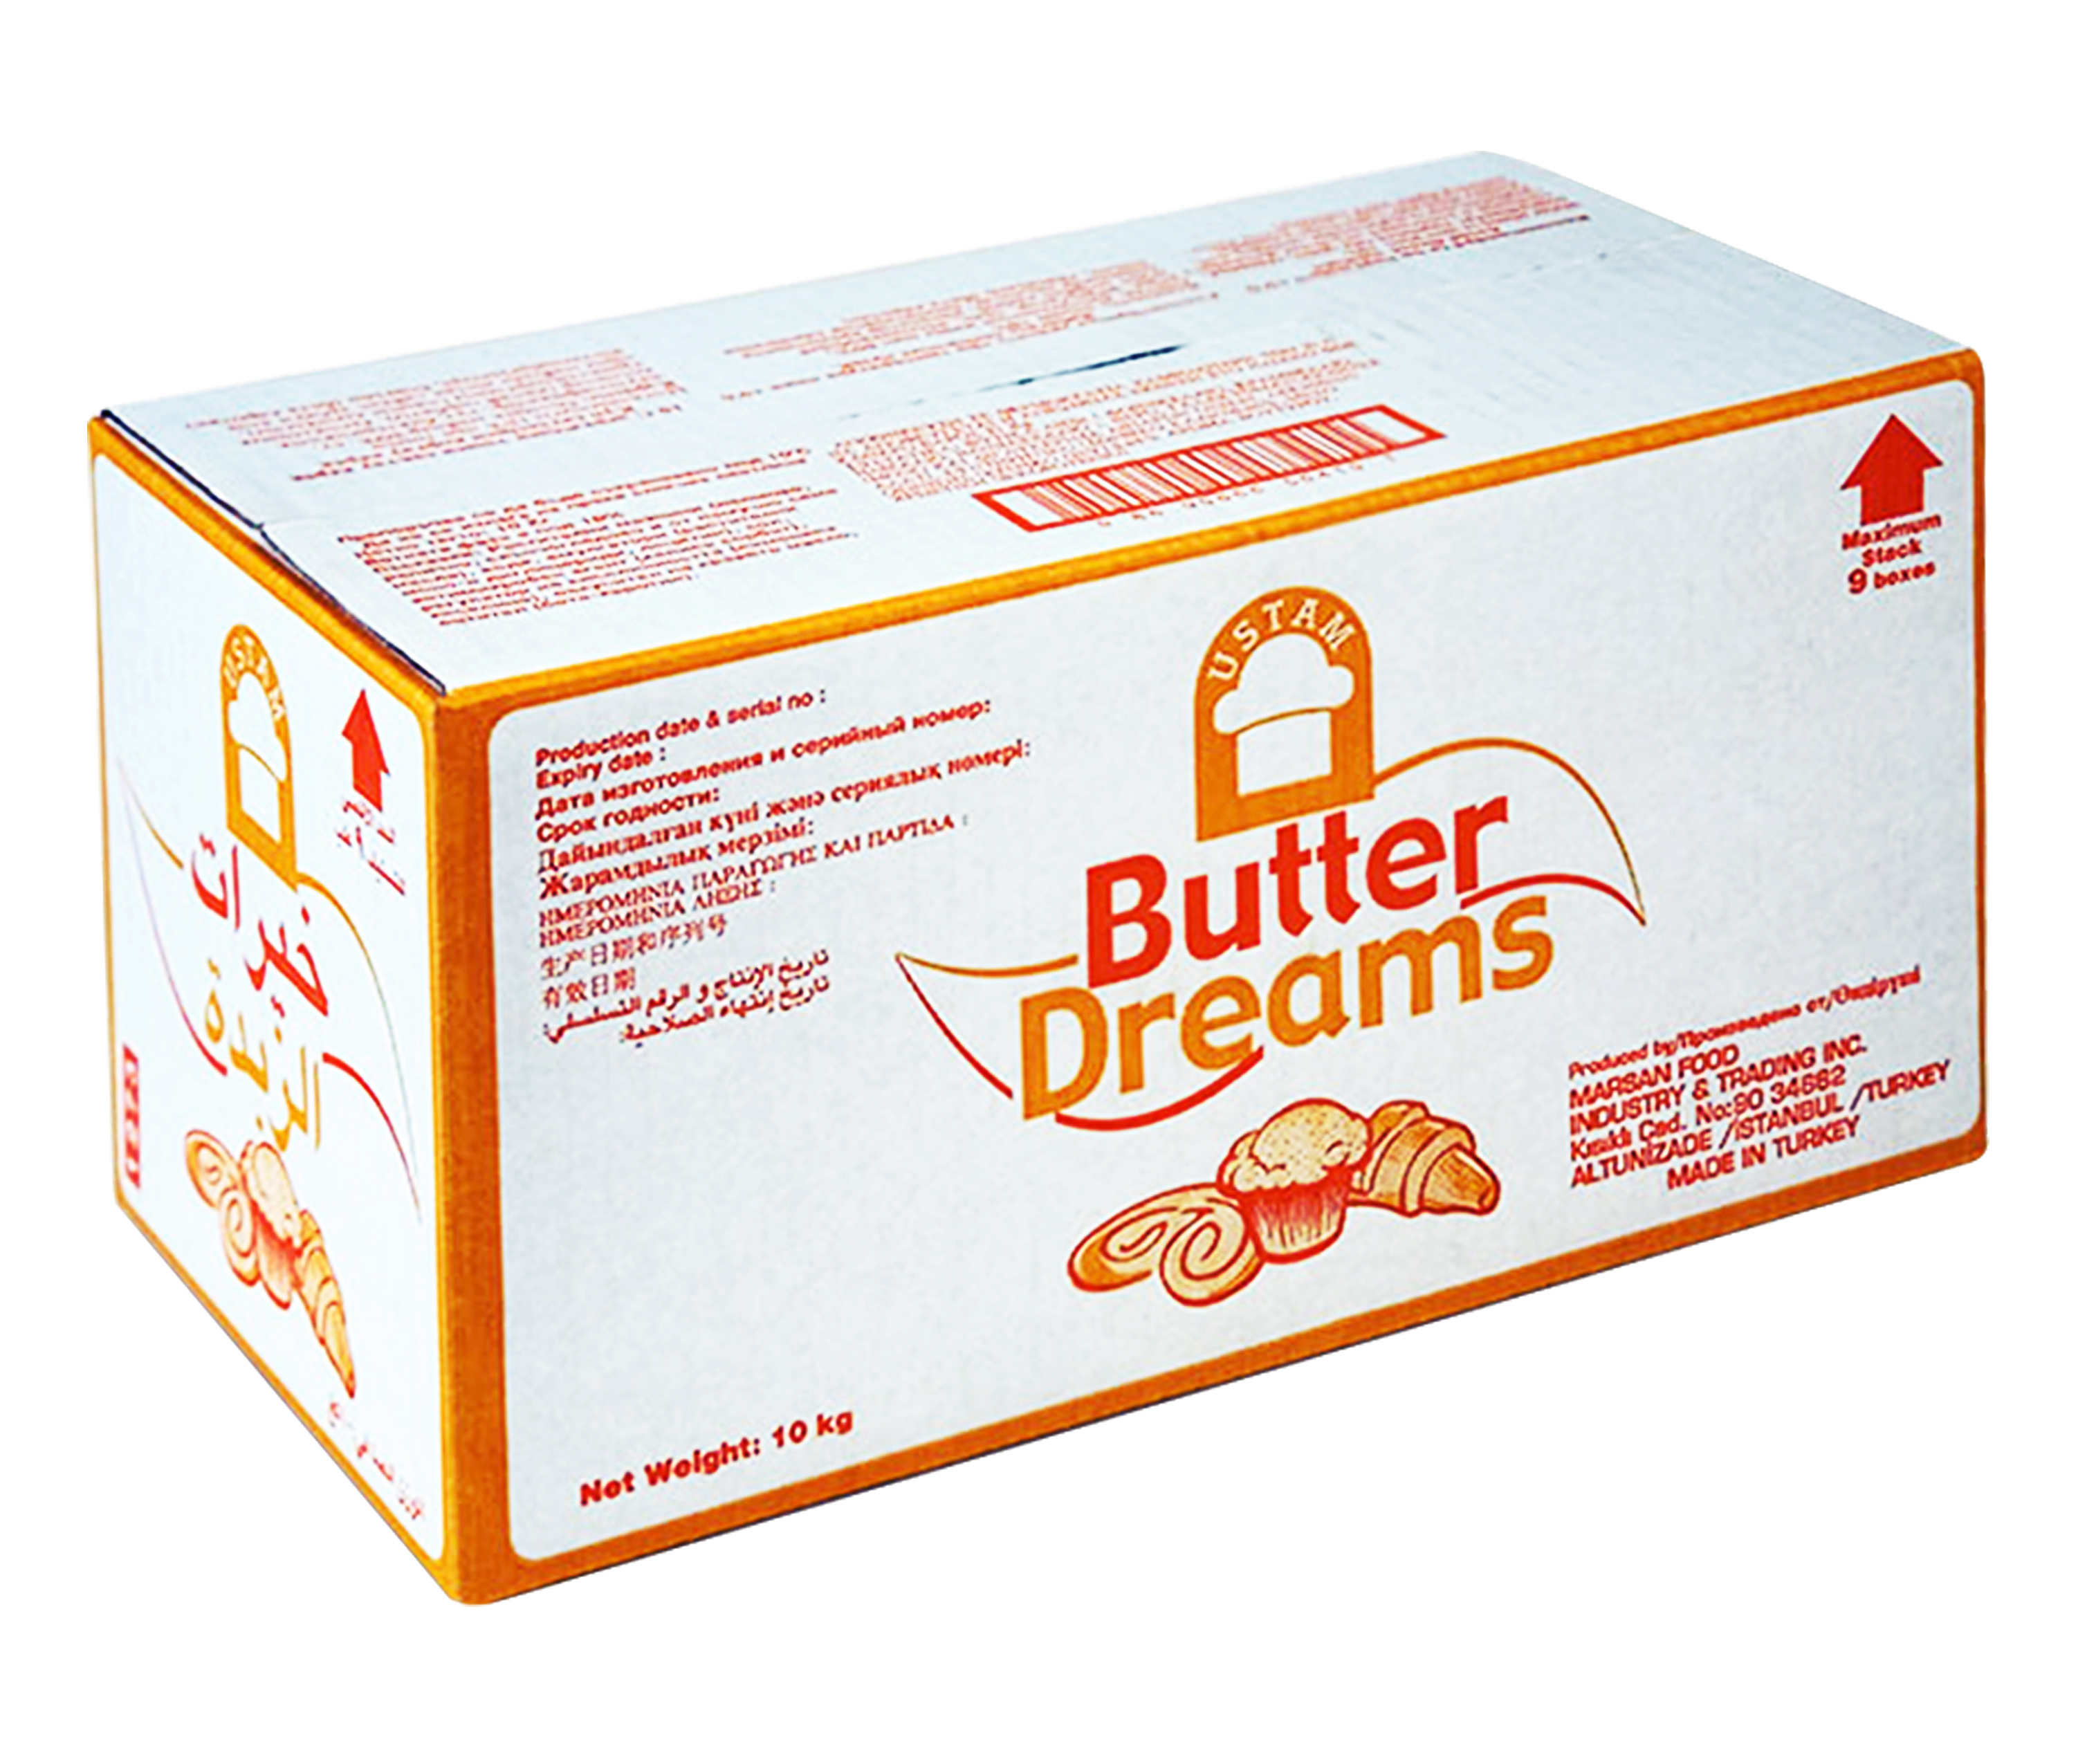 Butter Dreams Margarine Image